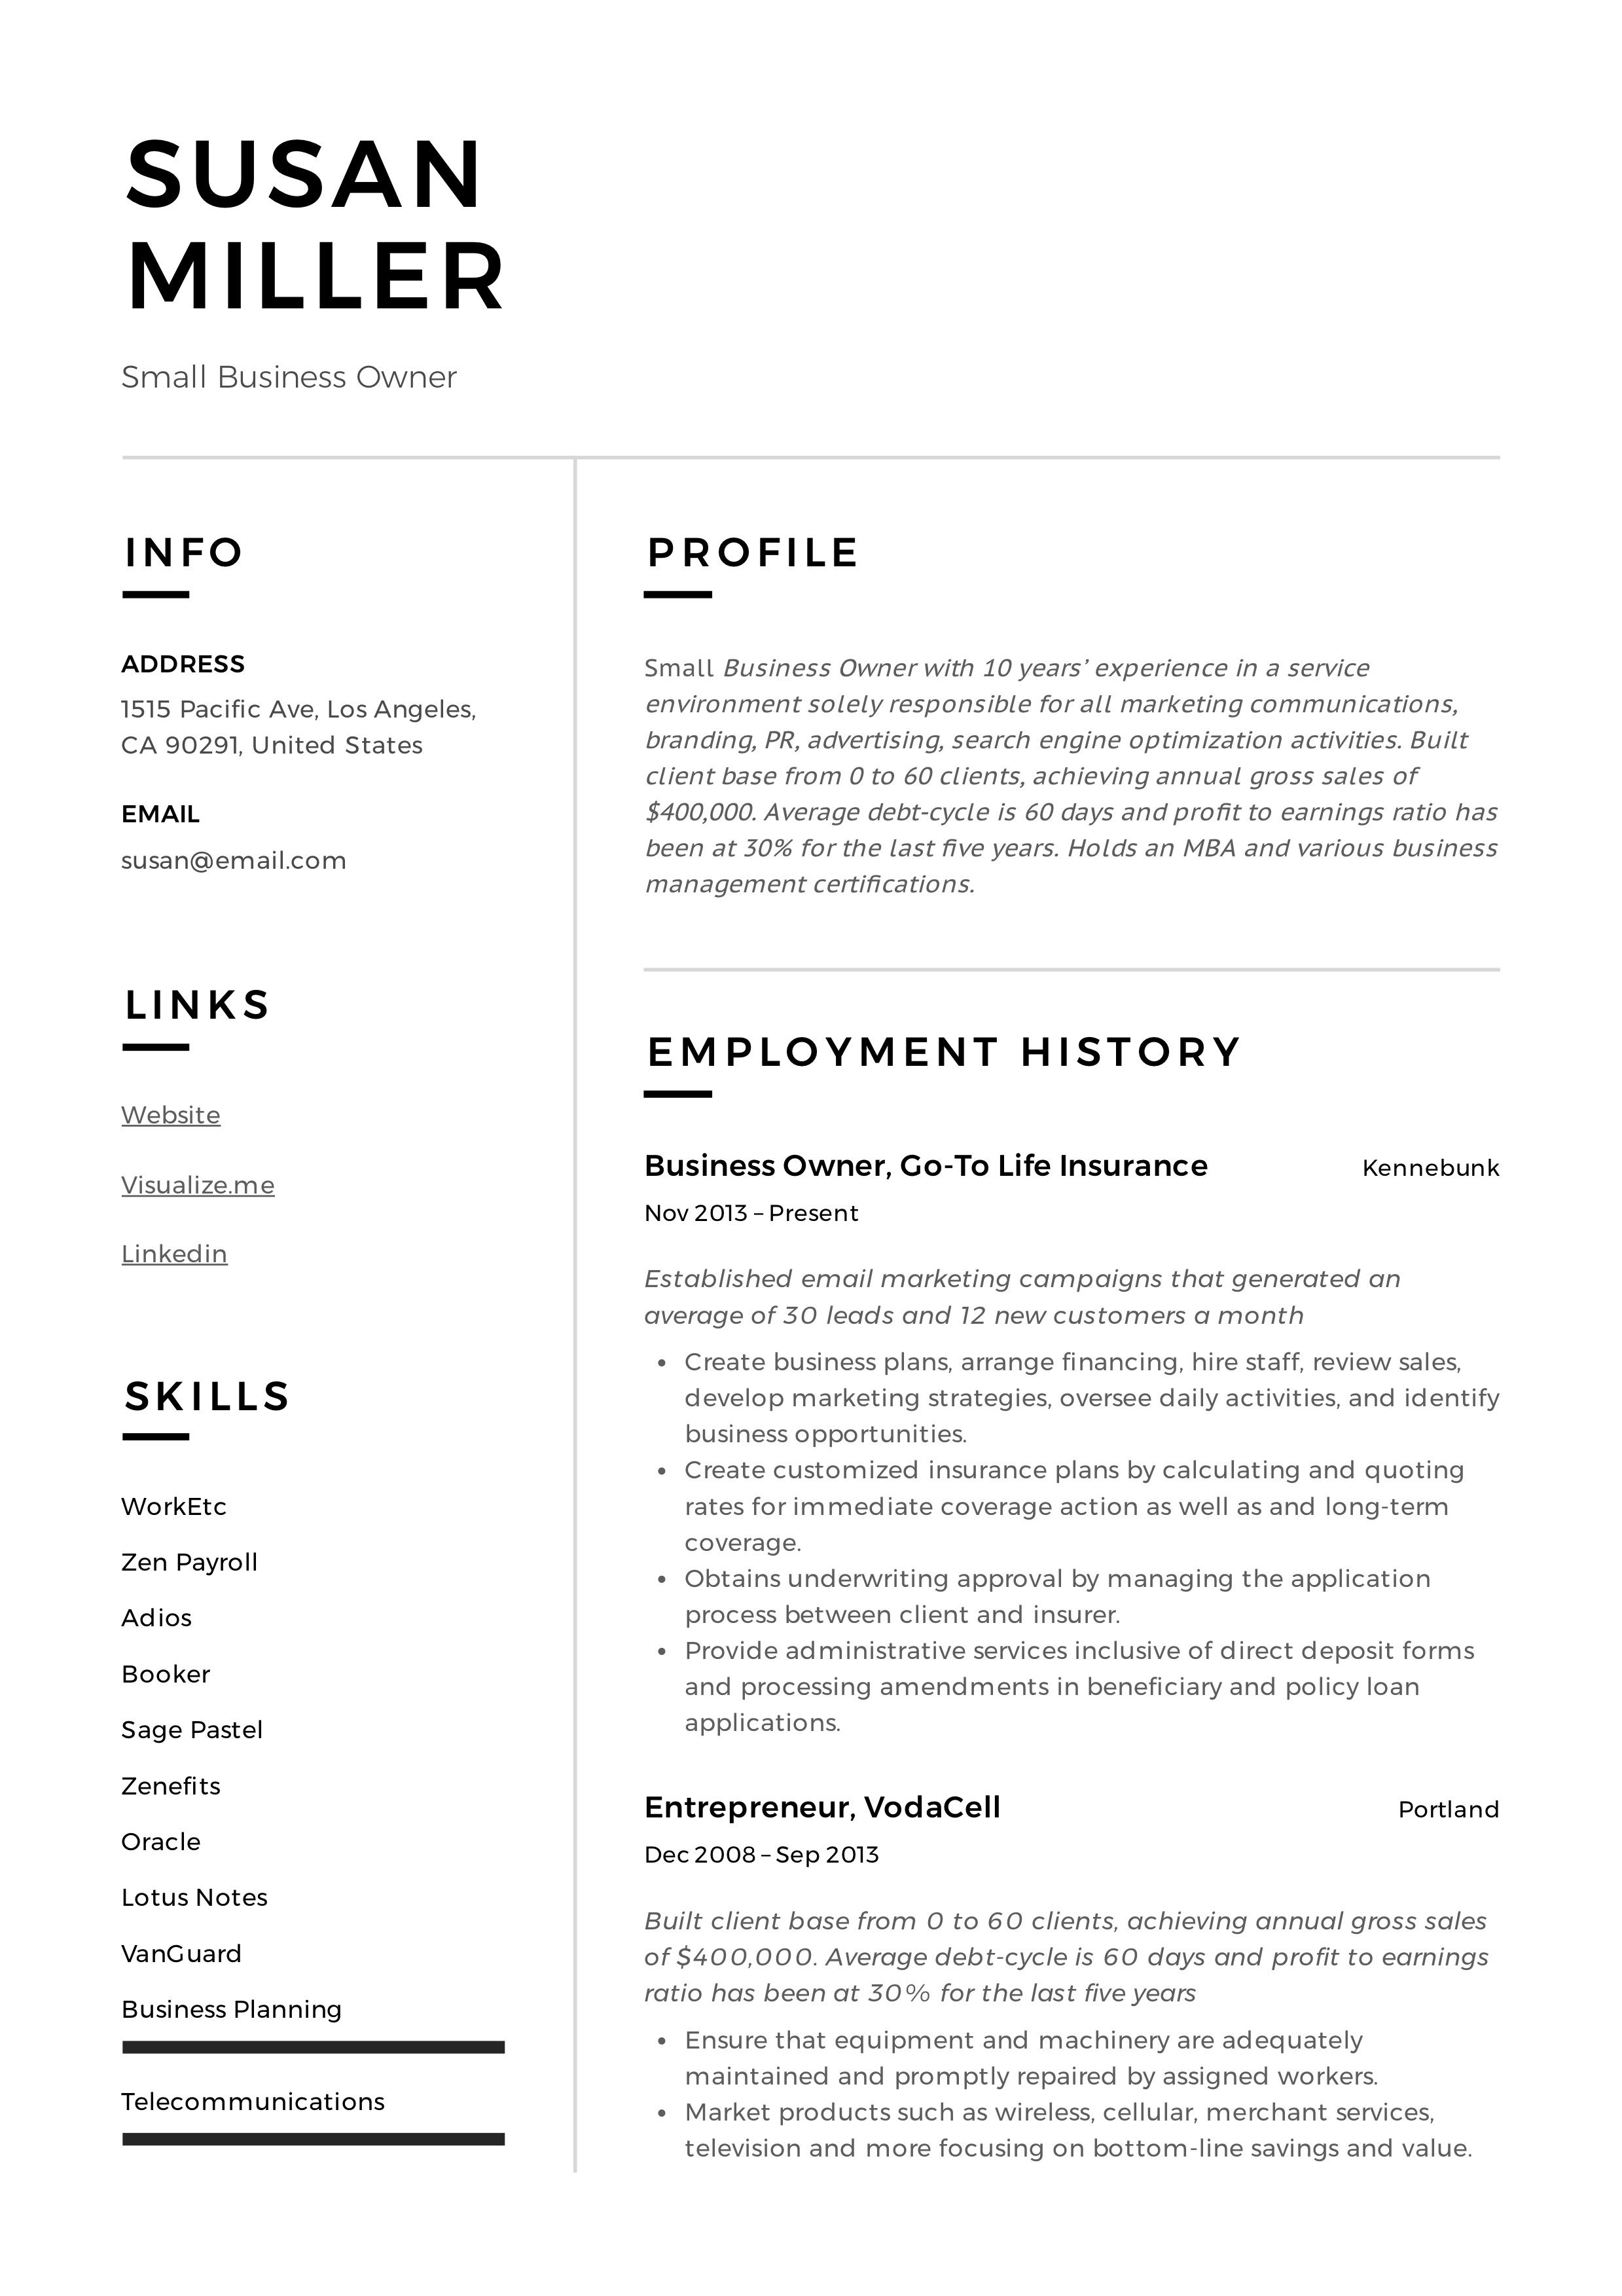 Small Business Owner Resume Guide in 2020 Resume guide